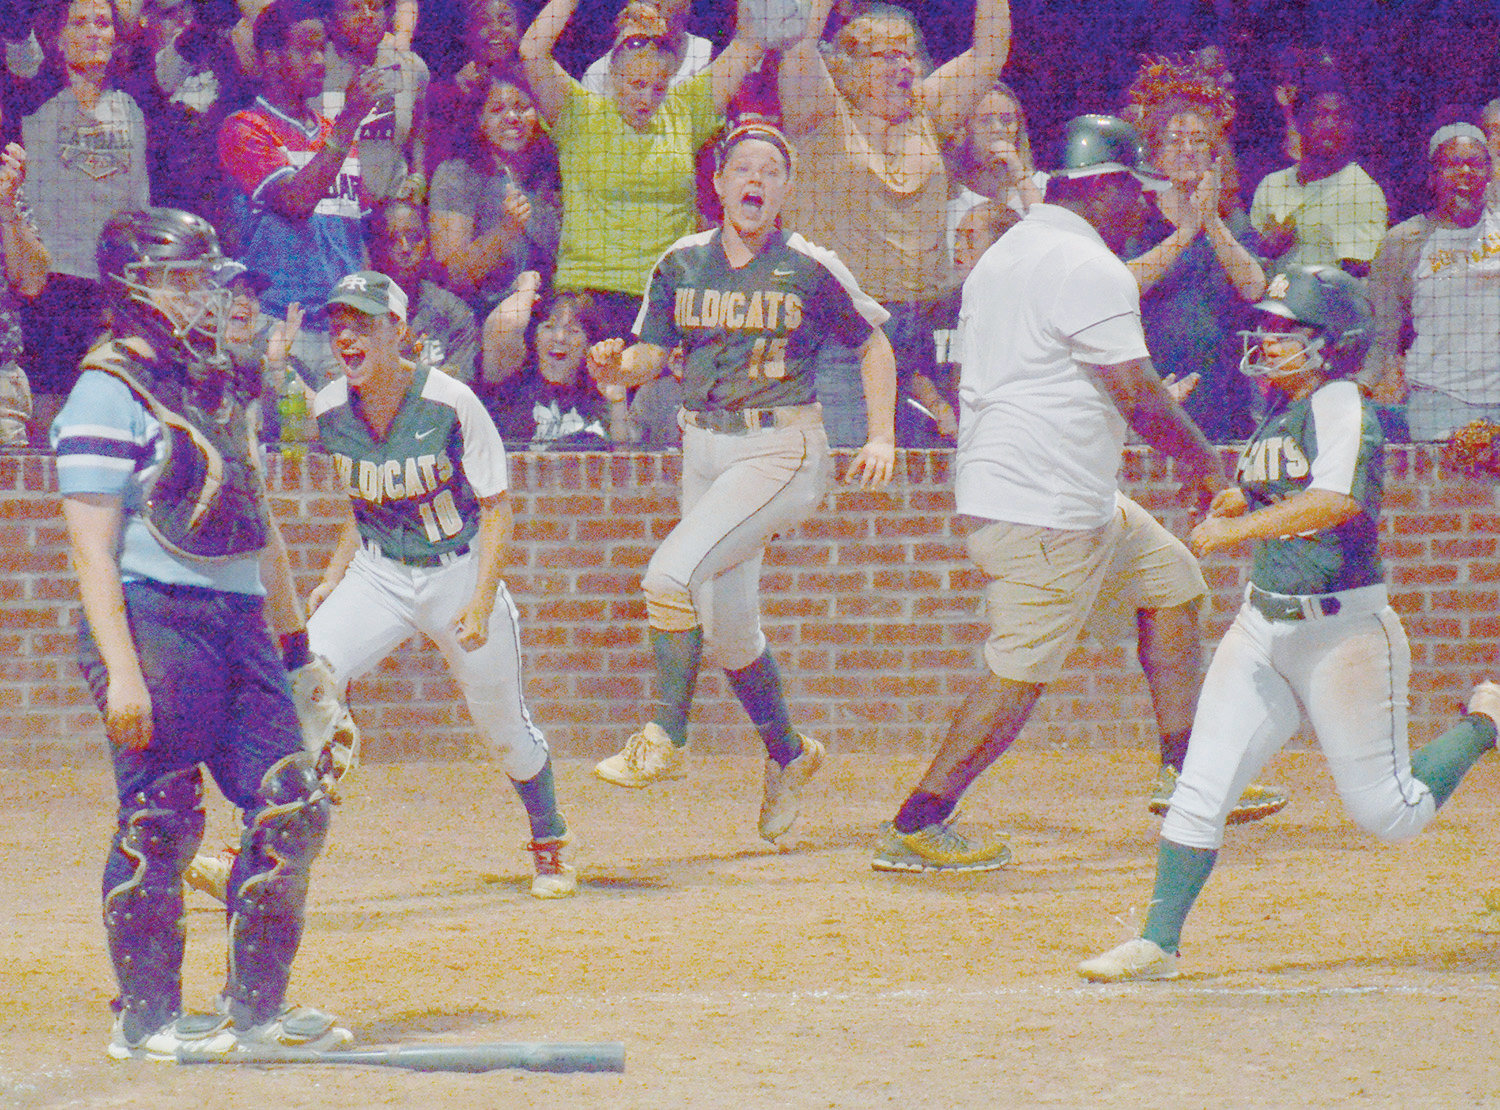 It was celebration time in Ramseur on Thursday evening as Eastern Randolph used three walk off runs to stun reigning state champion South Granville 9-8 to even the best-of-3 Eastern Finals series up at one apiece.